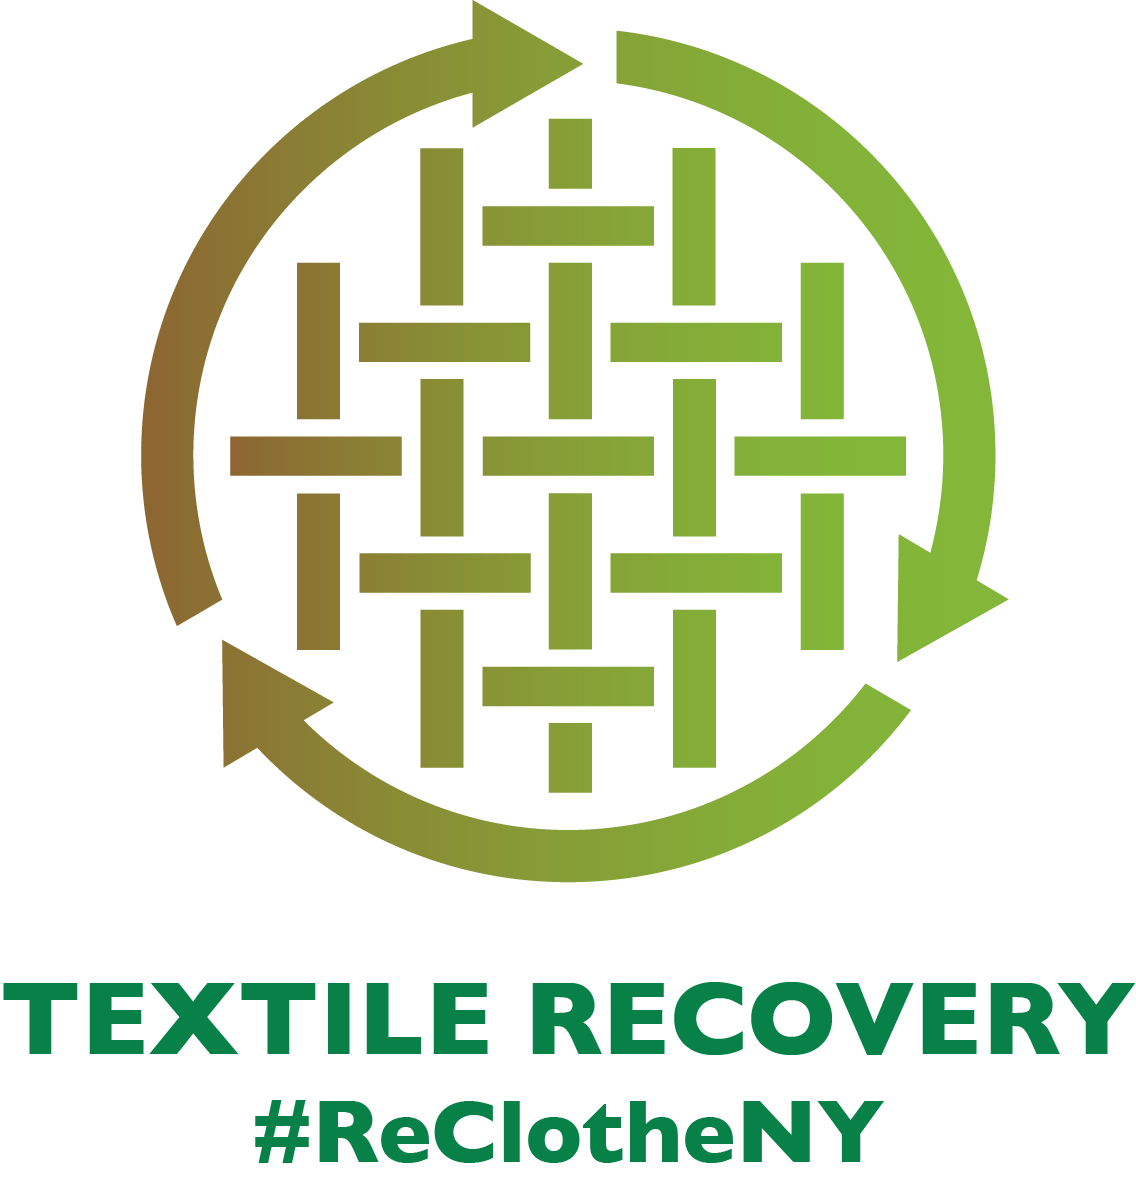 Uploaded Image: /vs-uploads/textile_recovery_working_group/TextileRecoveryV2.png